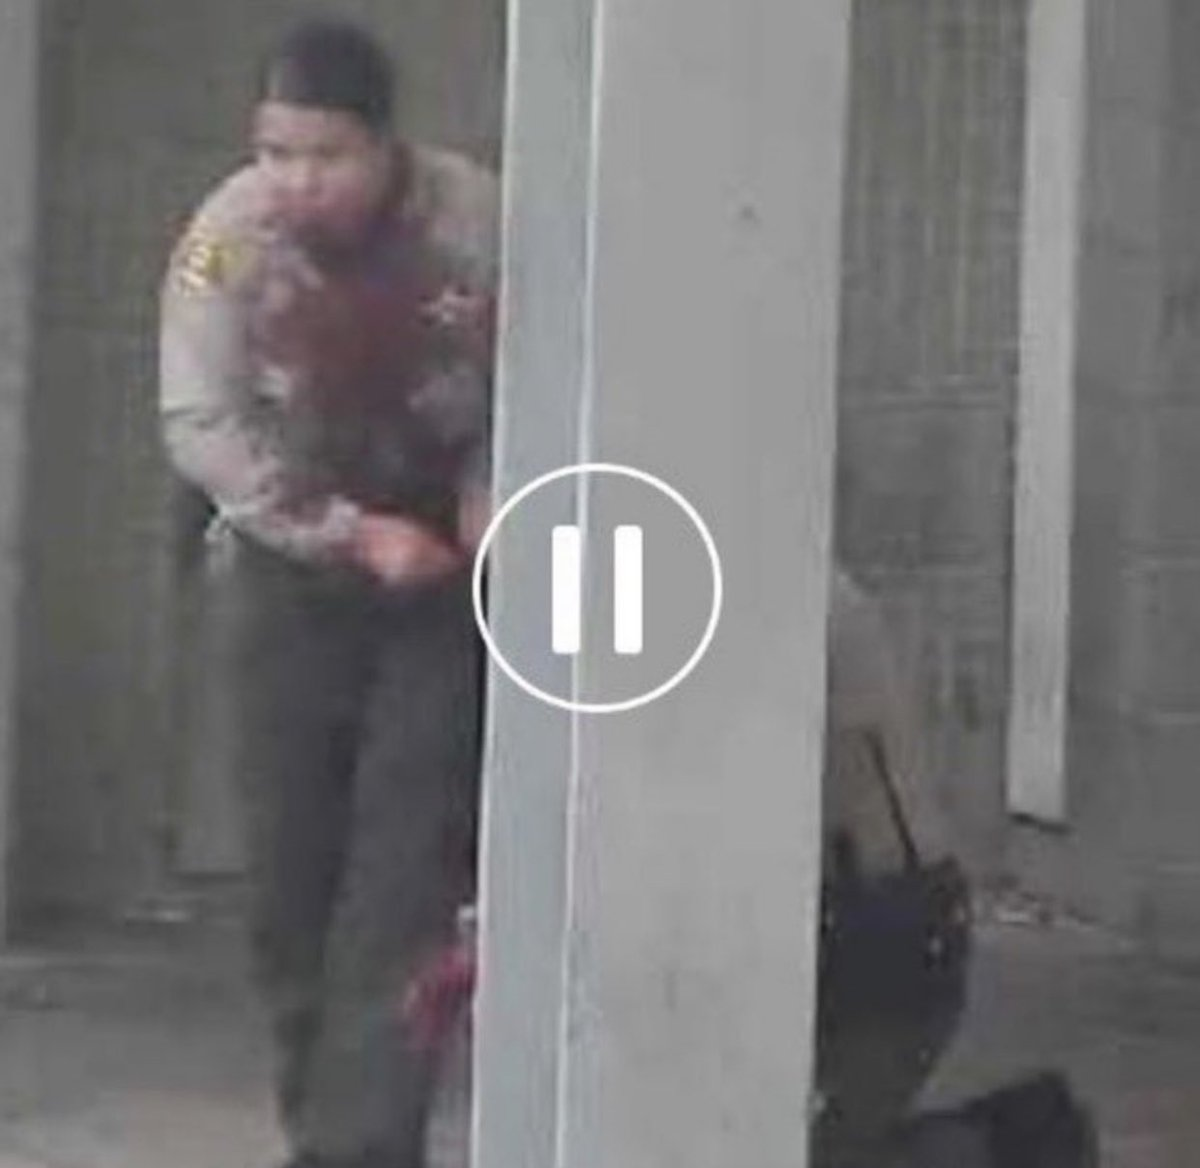 1. Here is a photo of the female LASD Deputy after she was ambushed along with her partner while sitting in their patrol car. 1 bullet broke her jaw. Her partner was shot twice in the head. She was able to radio for help & even apply a tourniquet to her partner's wounds.